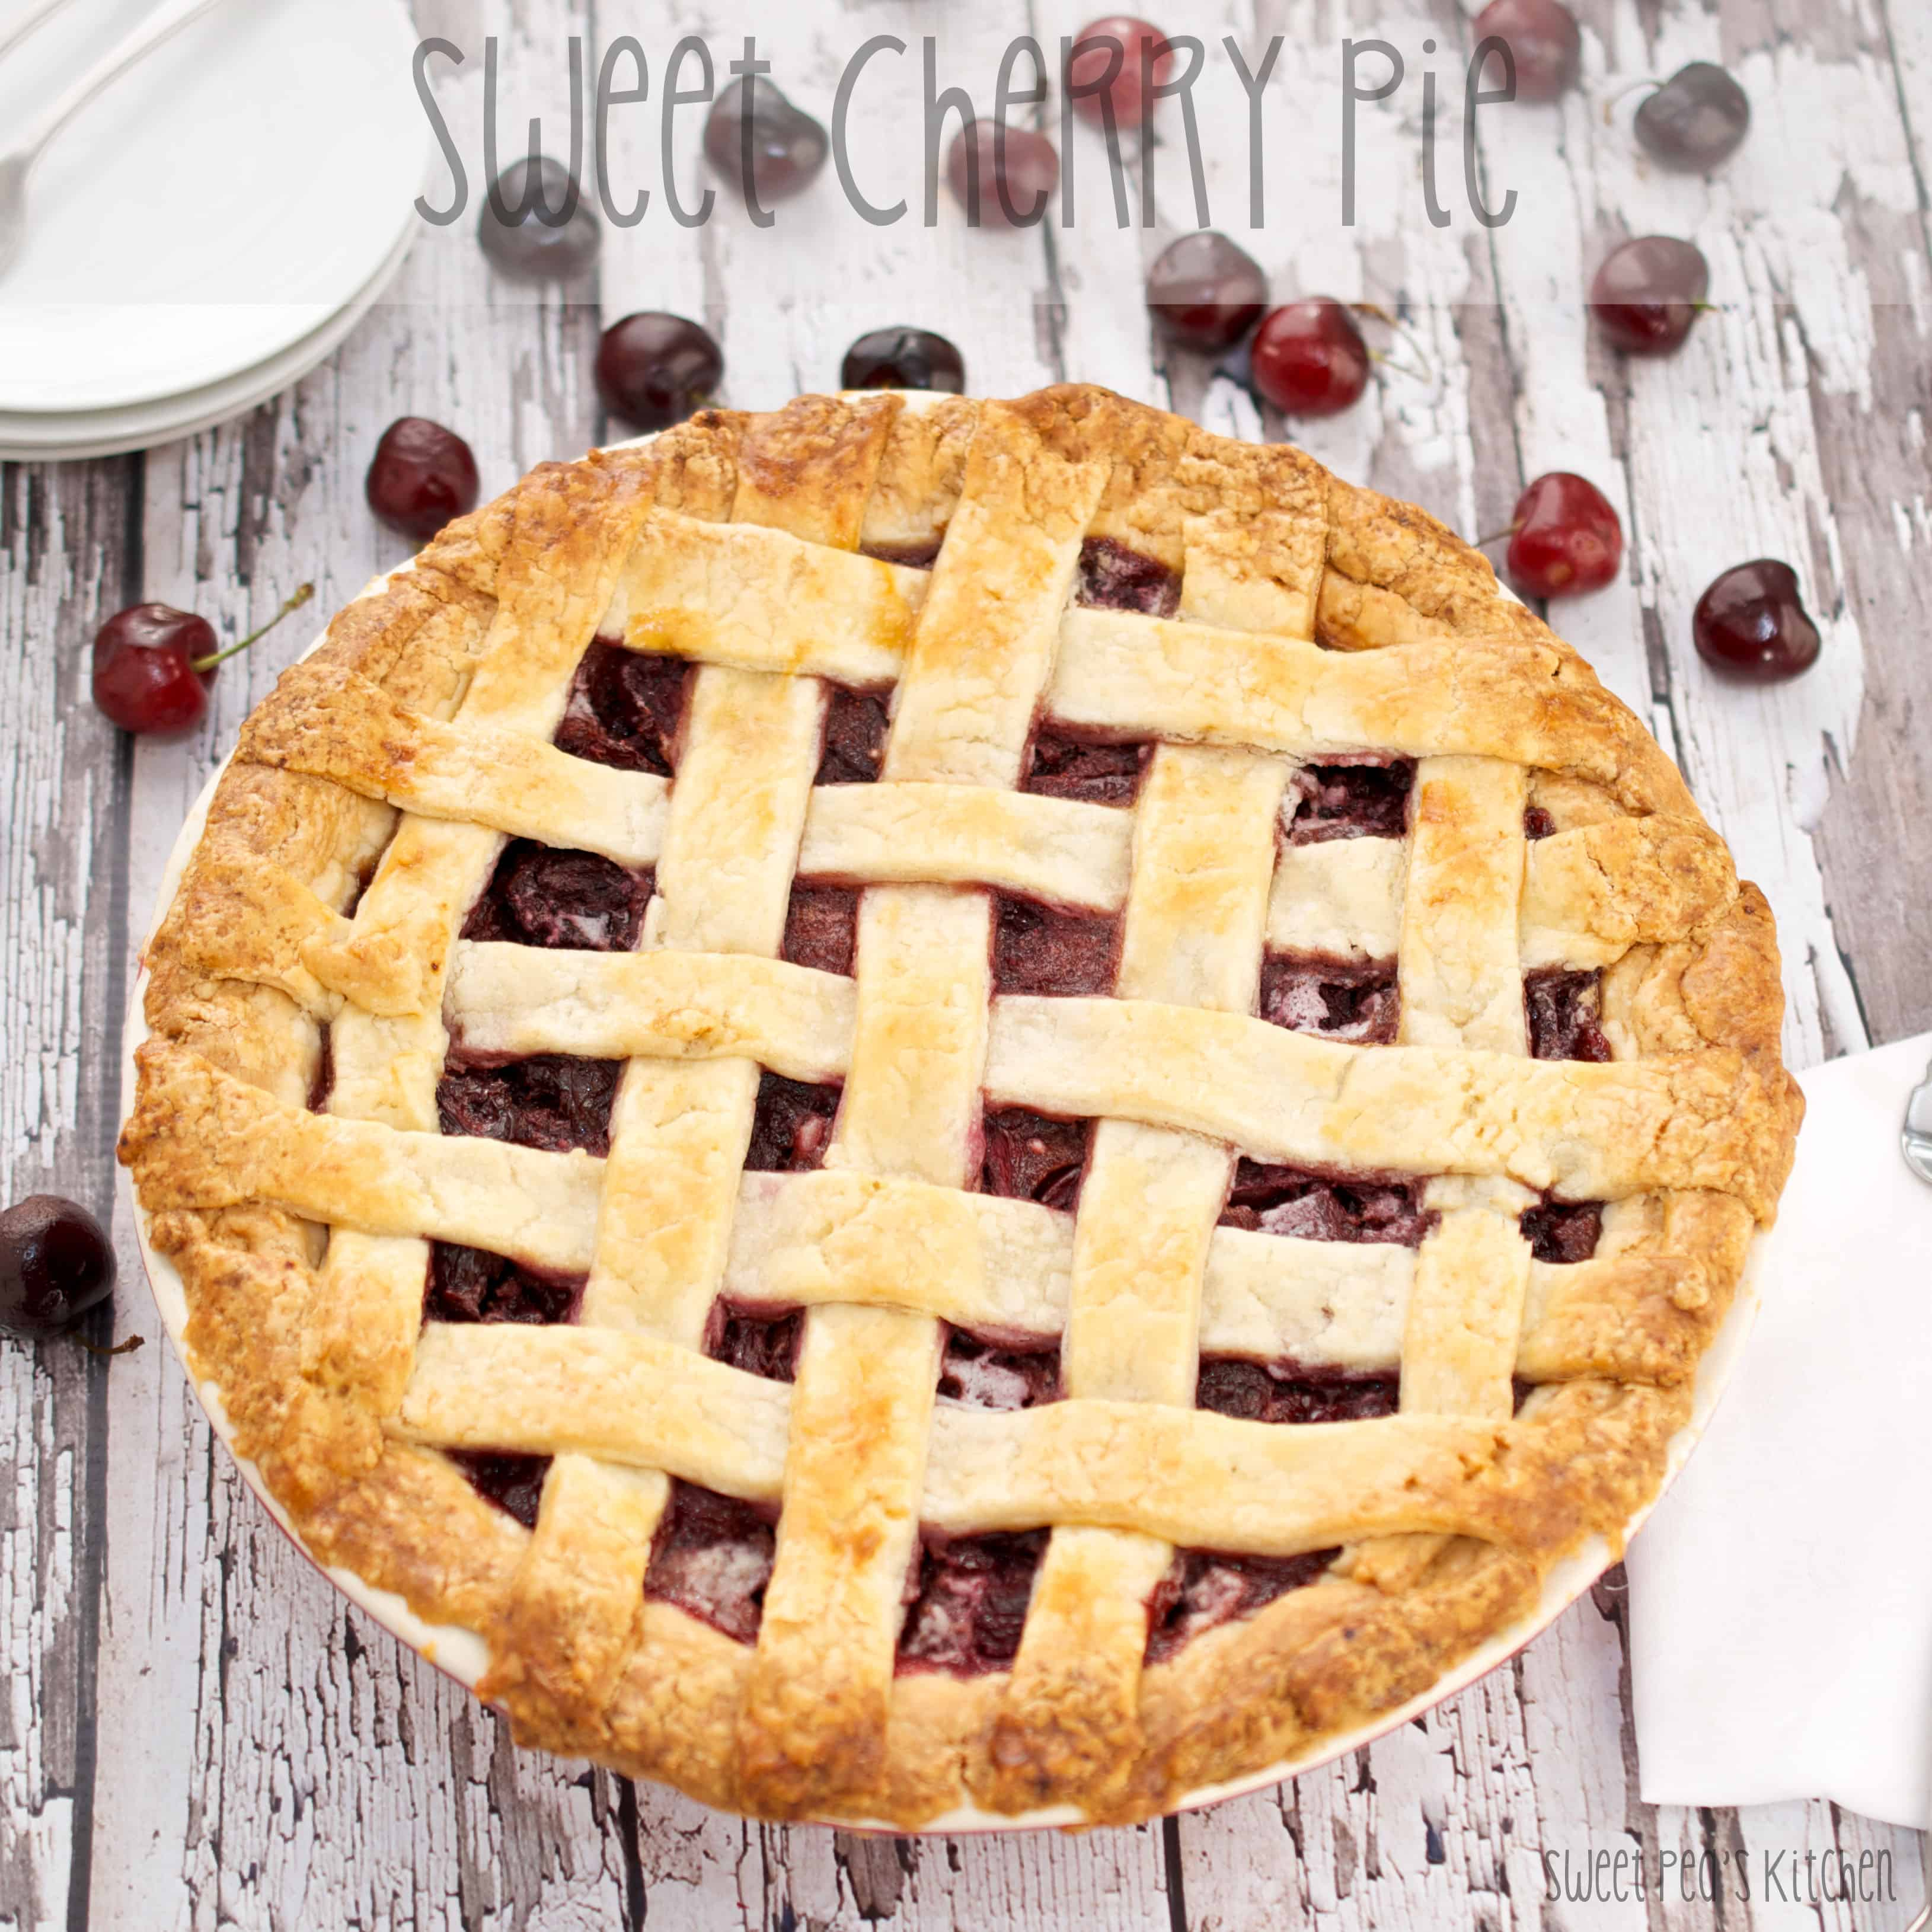 ready to eat sweet cherry pie in pan